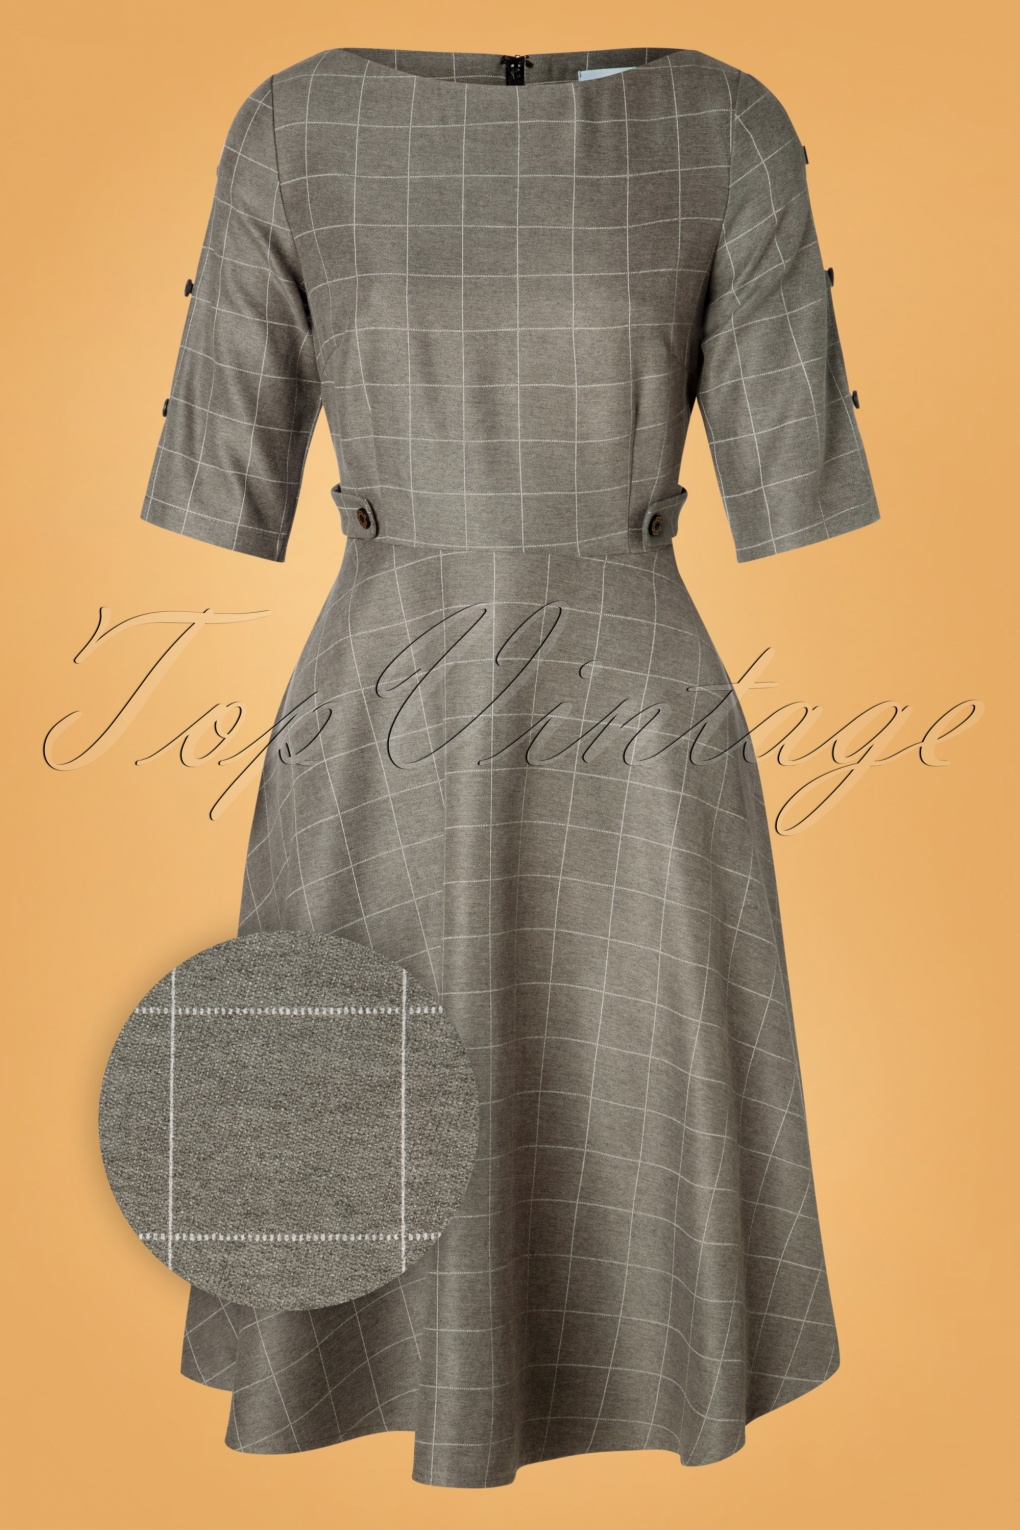 1960s Style Clothing & 60s Fashion Lady Check Swing Dress in Grey £49.58 AT vintagedancer.com